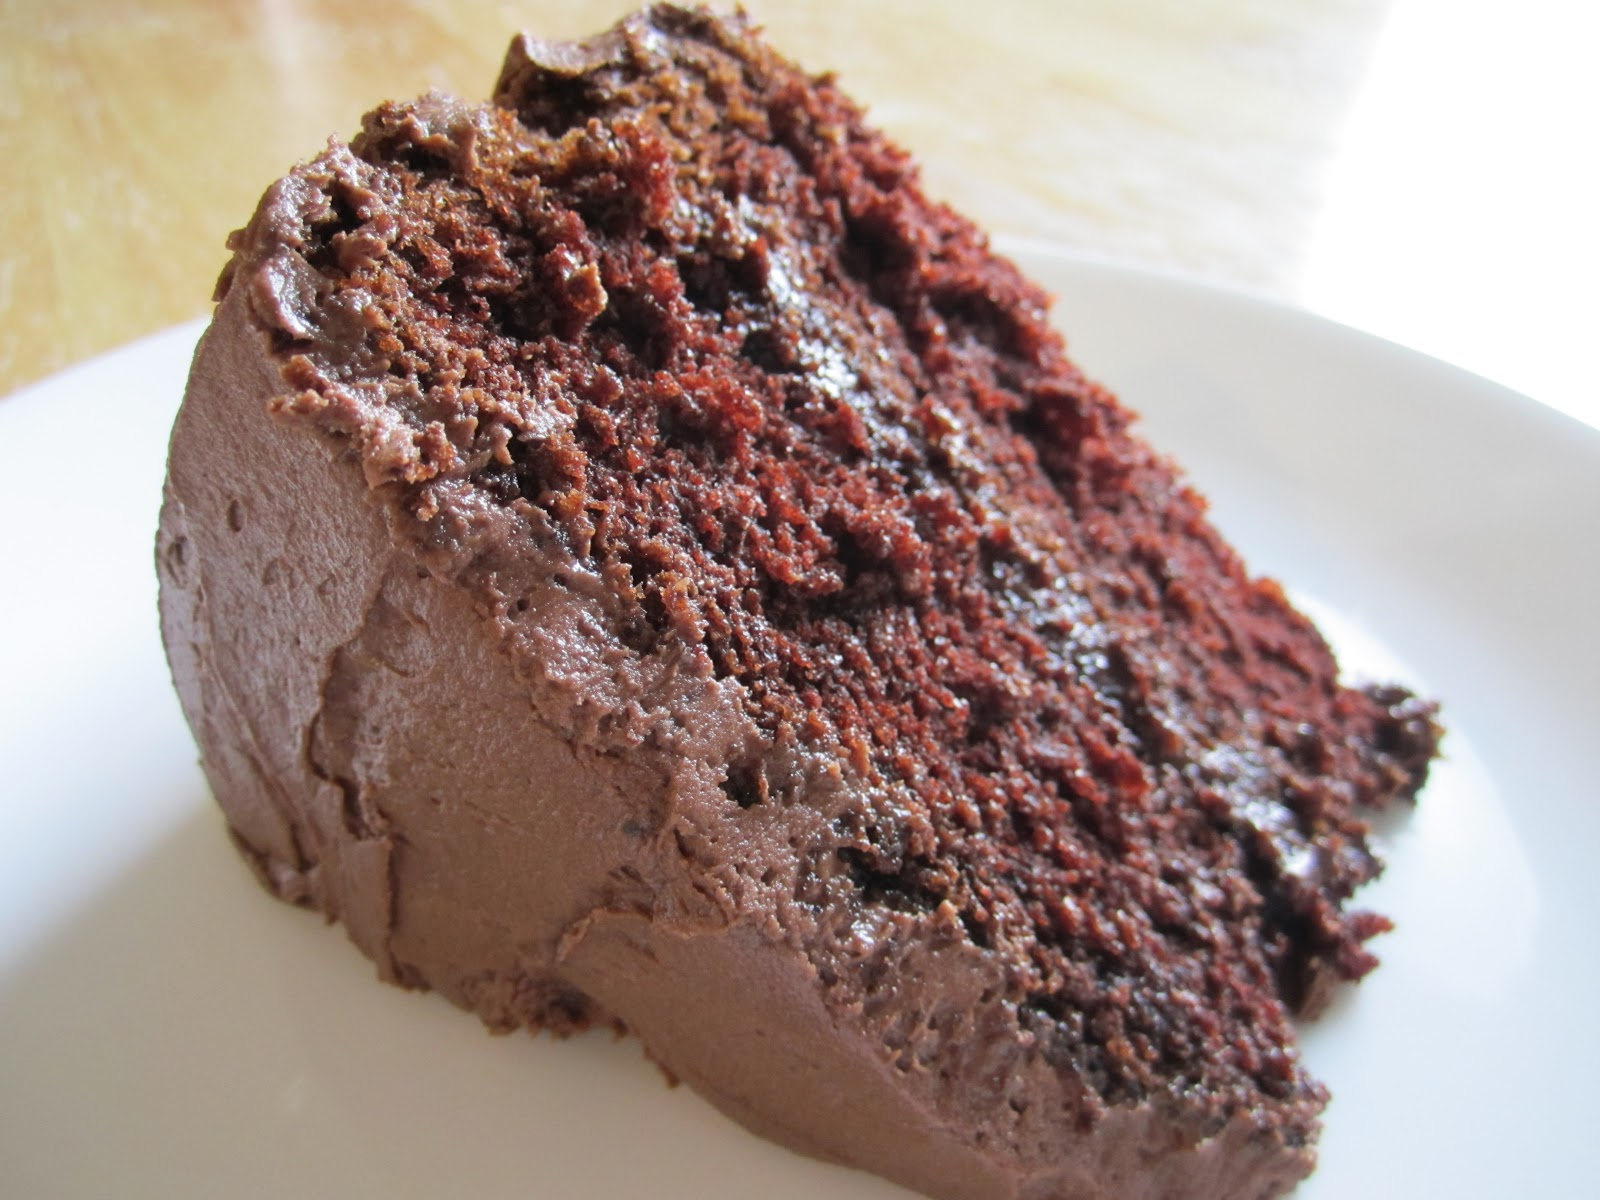 Chocolate Cake Pictures And Recipes : Time For Supper!: Fantastic Chocolate Cake